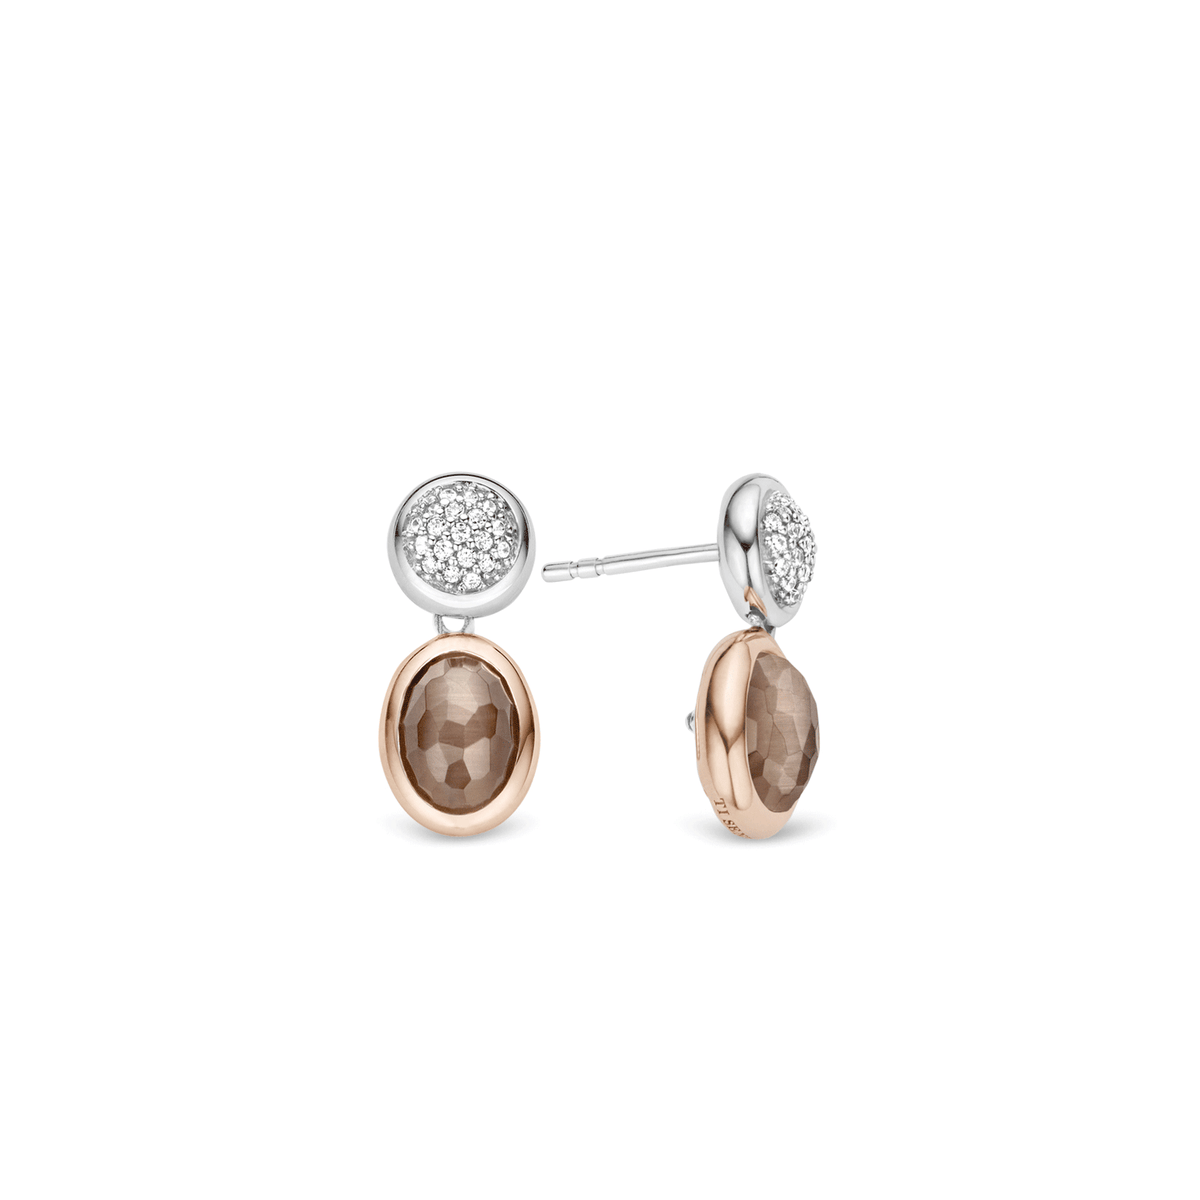 TI SENTO - Milano Earrings 7745CB